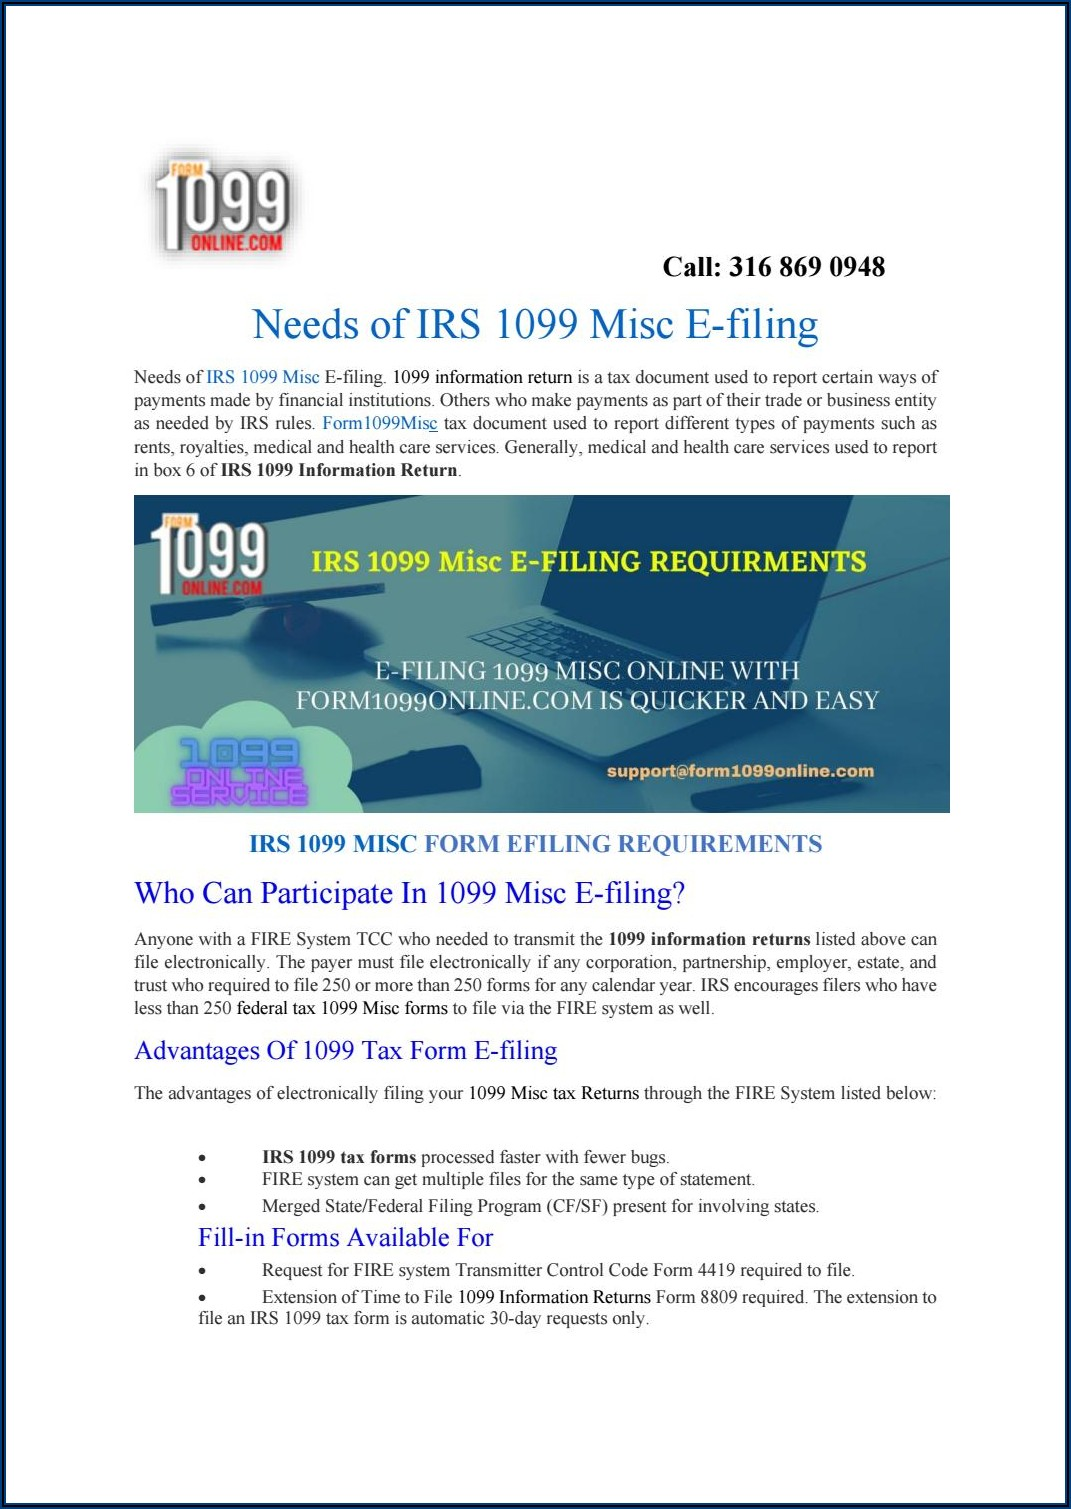 Filing 1099 Misc Forms Electronically